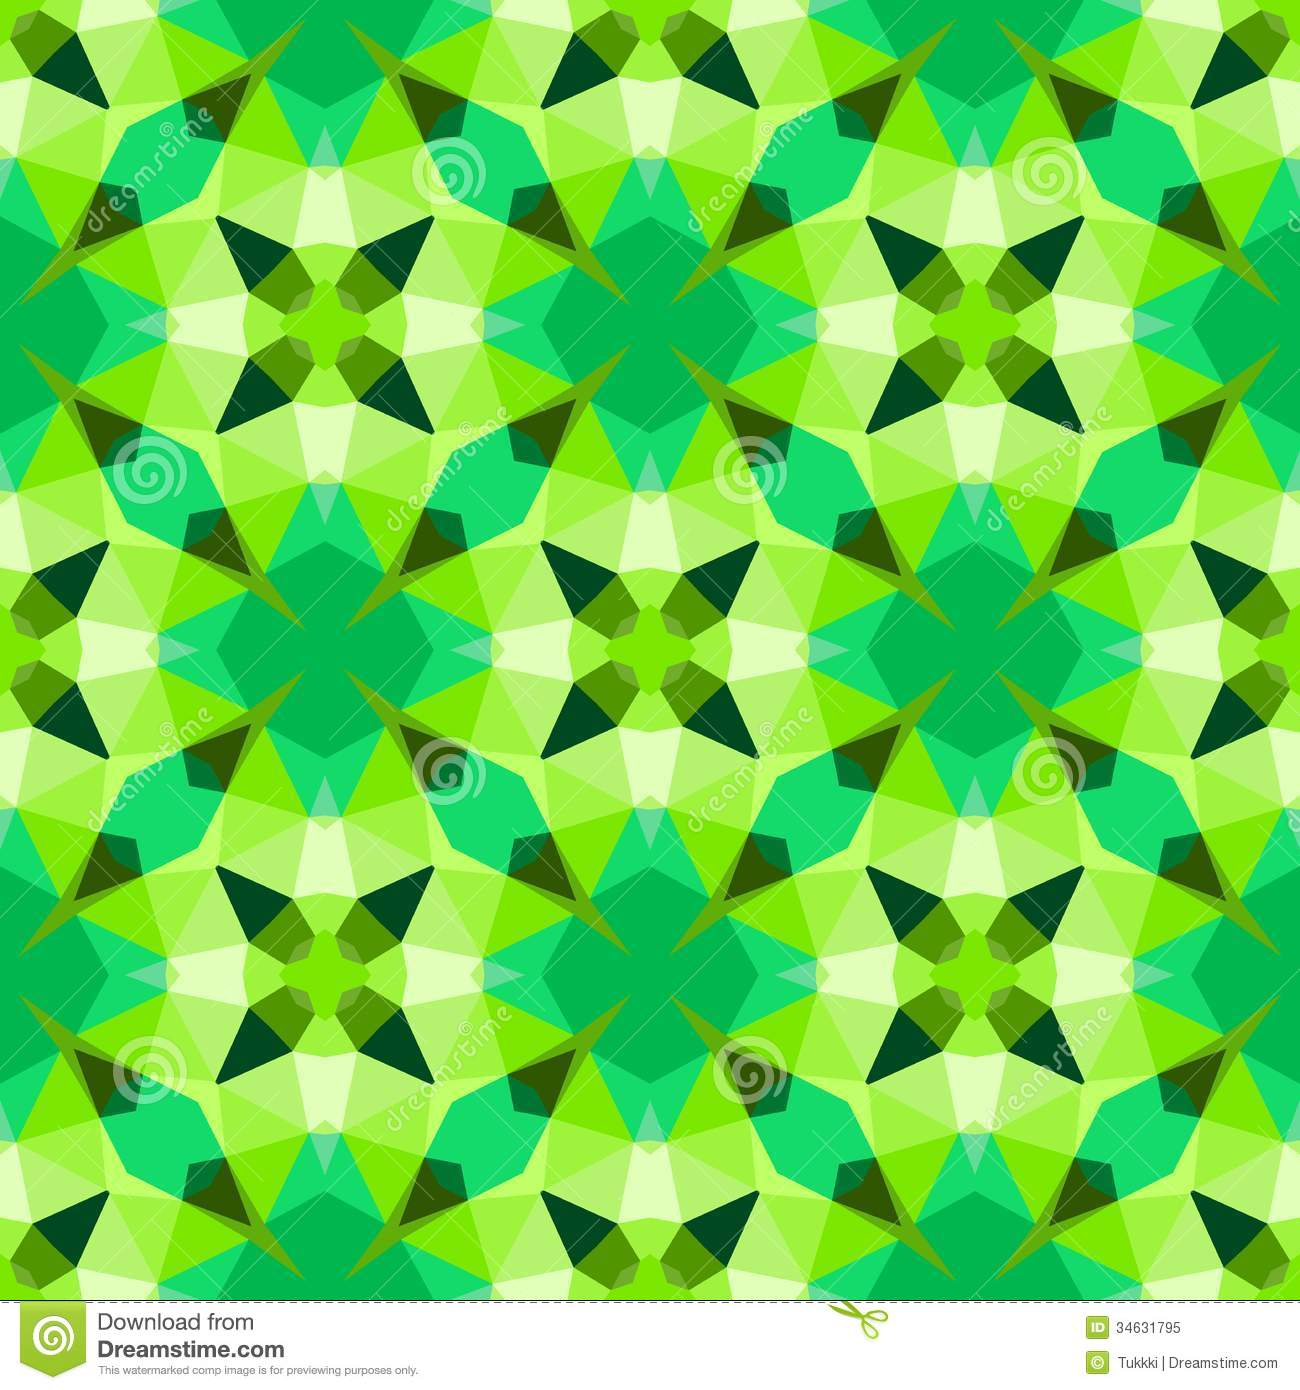 Multicolor Geometric Pattern In Bright Green. Royalty Free Stock Photo ...